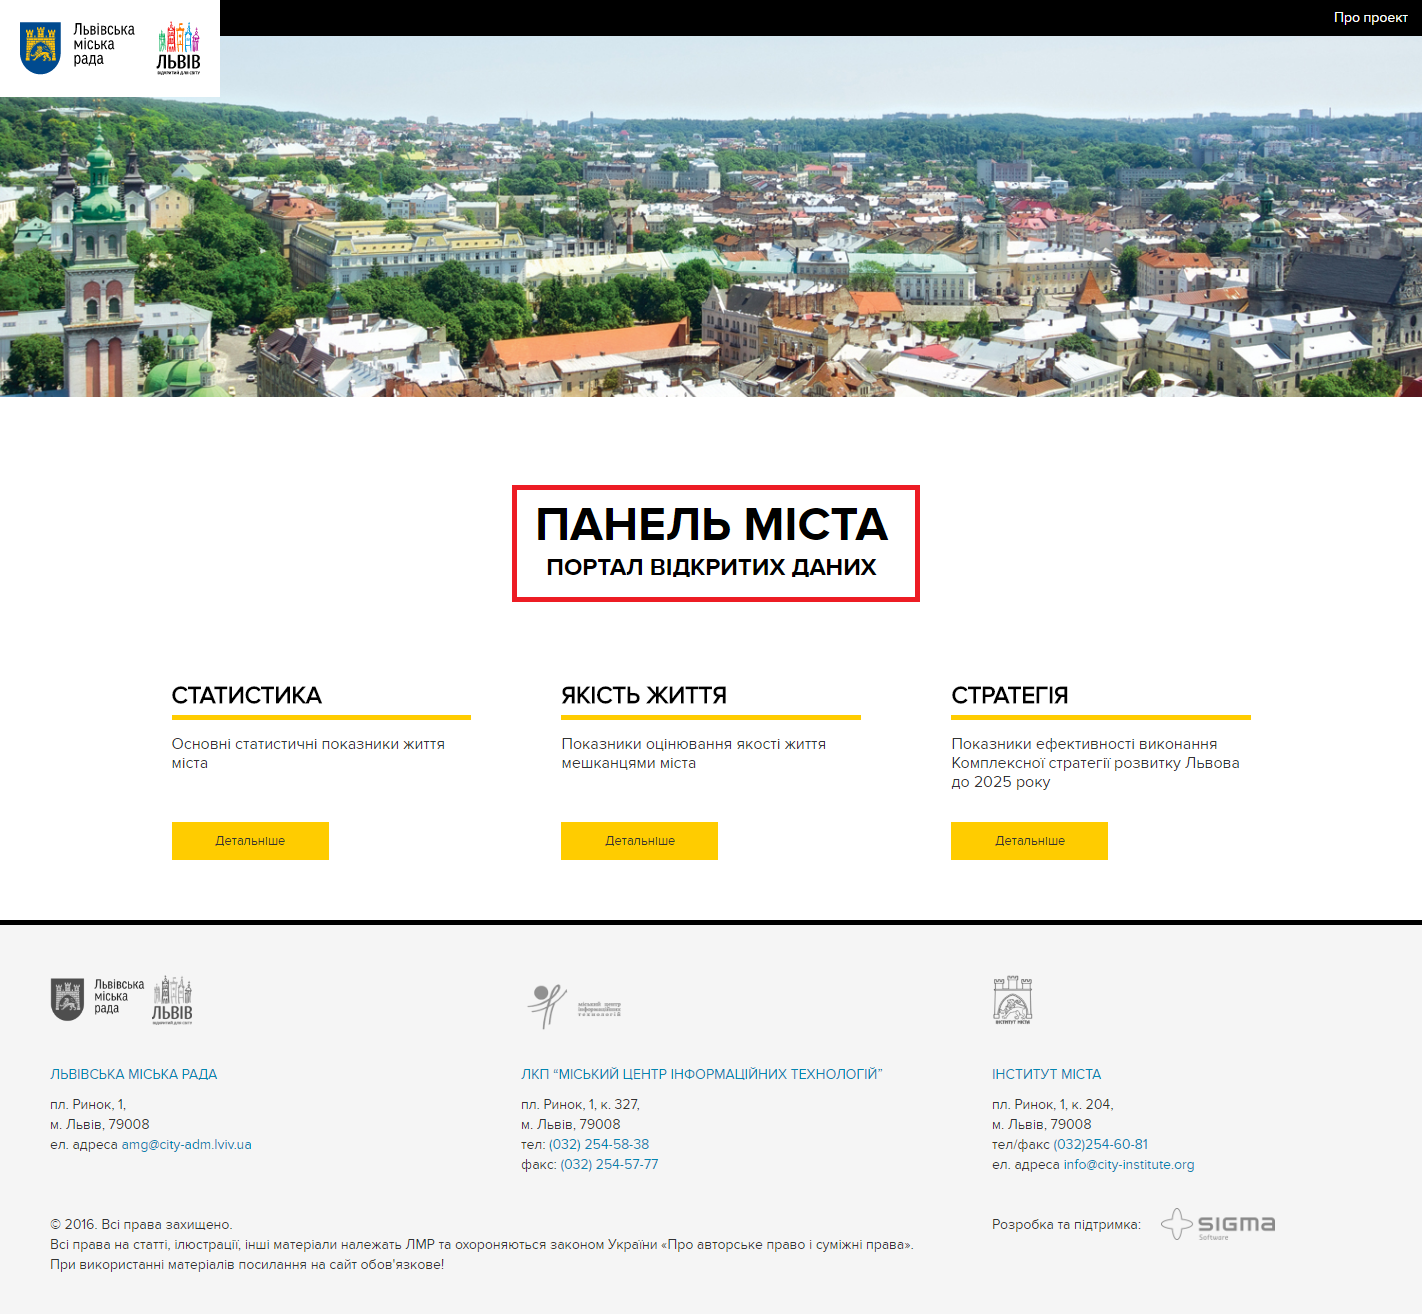 http://dashboard.city-adm.lviv.ua/#/